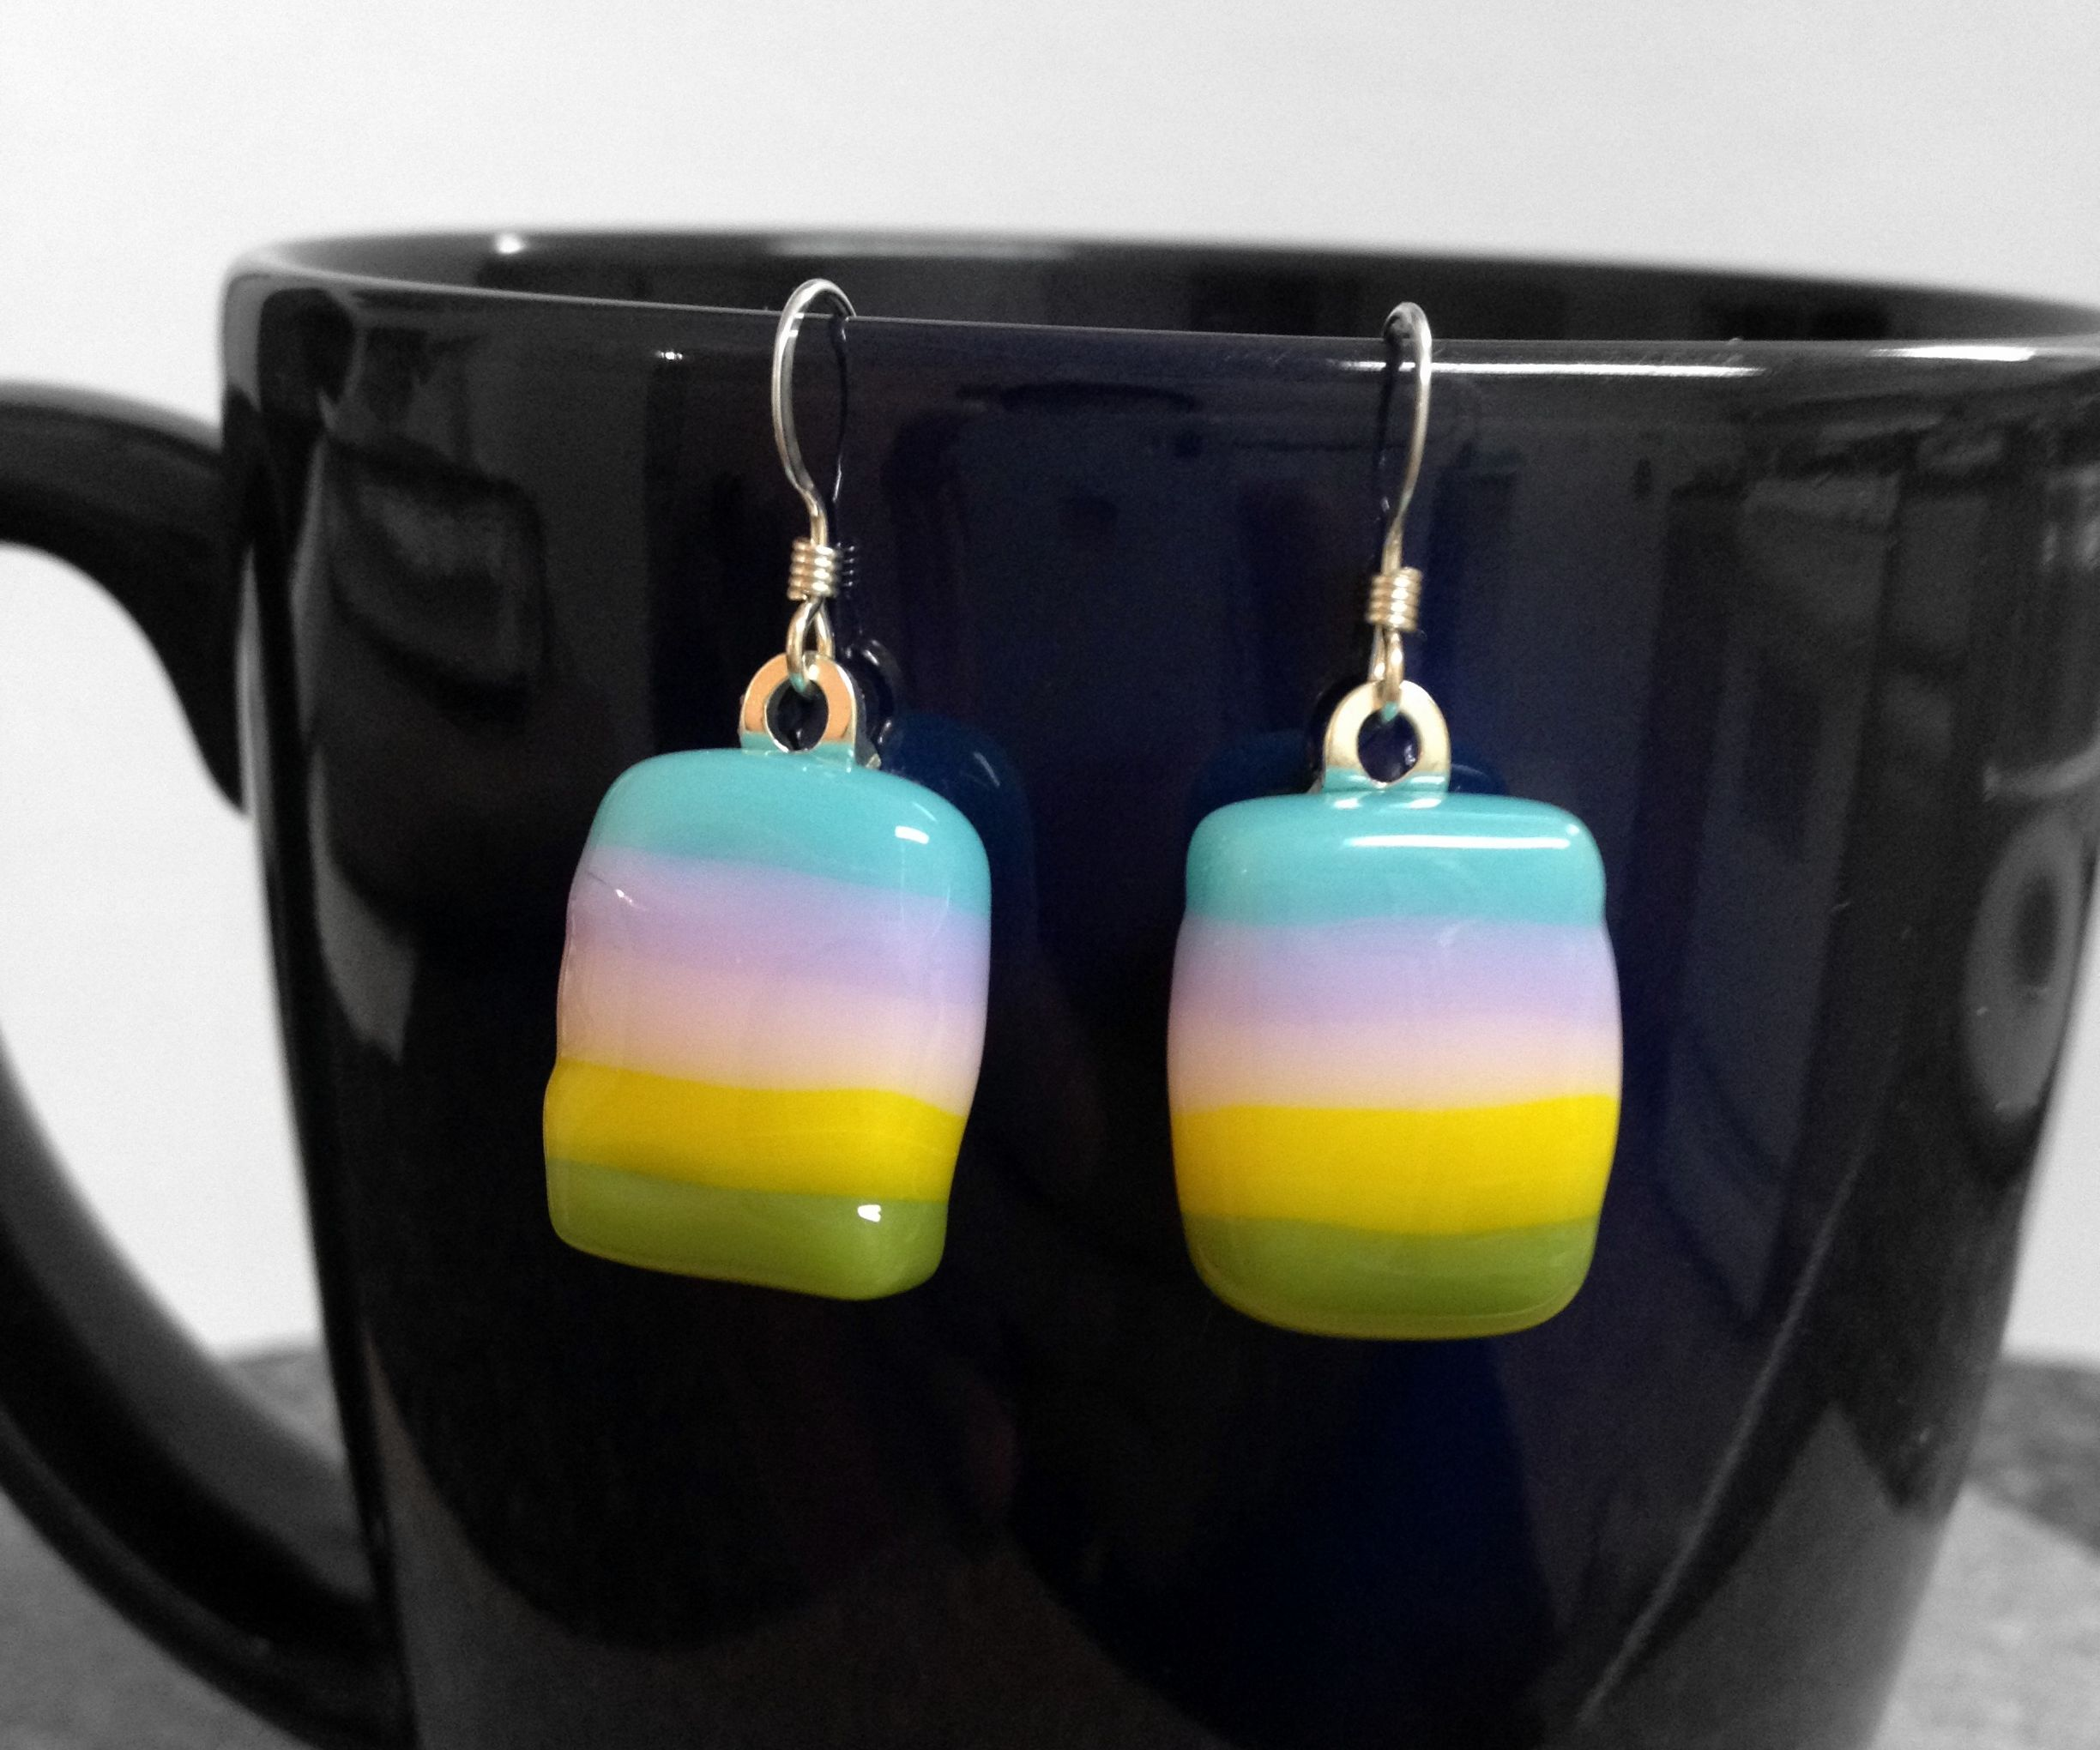 DIY Fused Glass Earrings in Microwave Oven